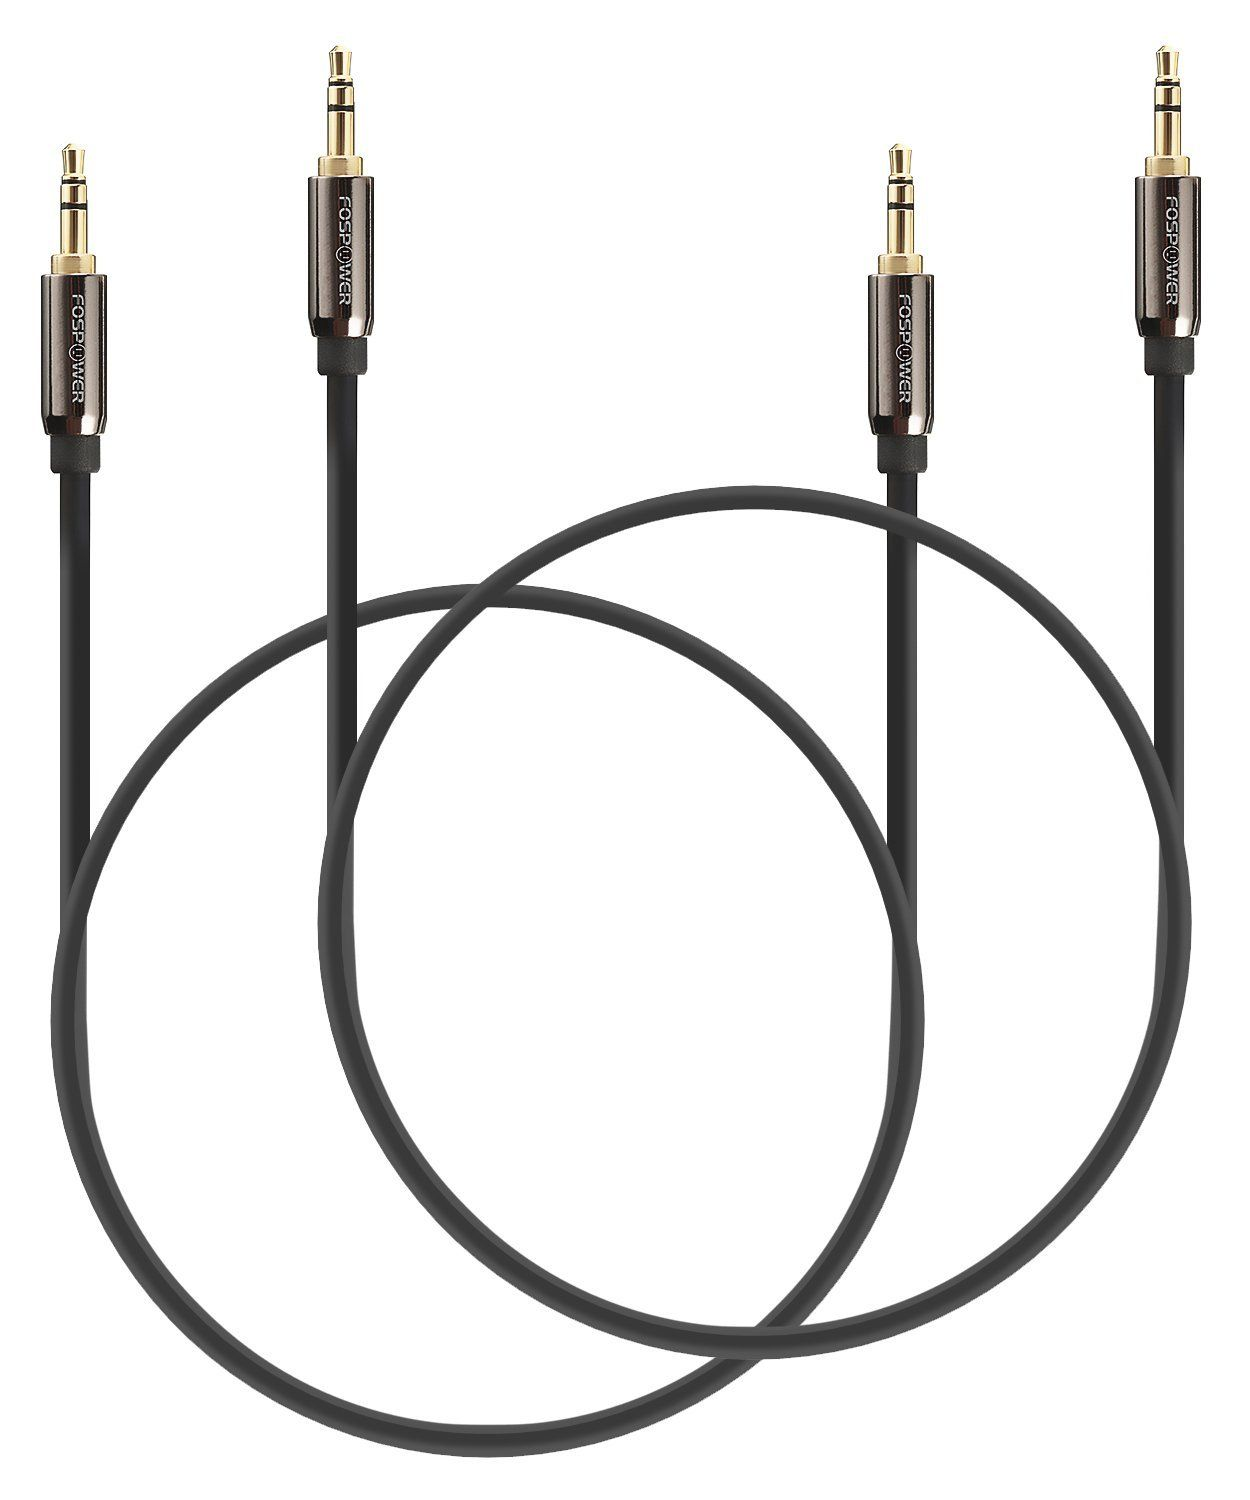 Audio Cable 25 Ft 2 Pack Fospower Stereo Audio 3 5mm